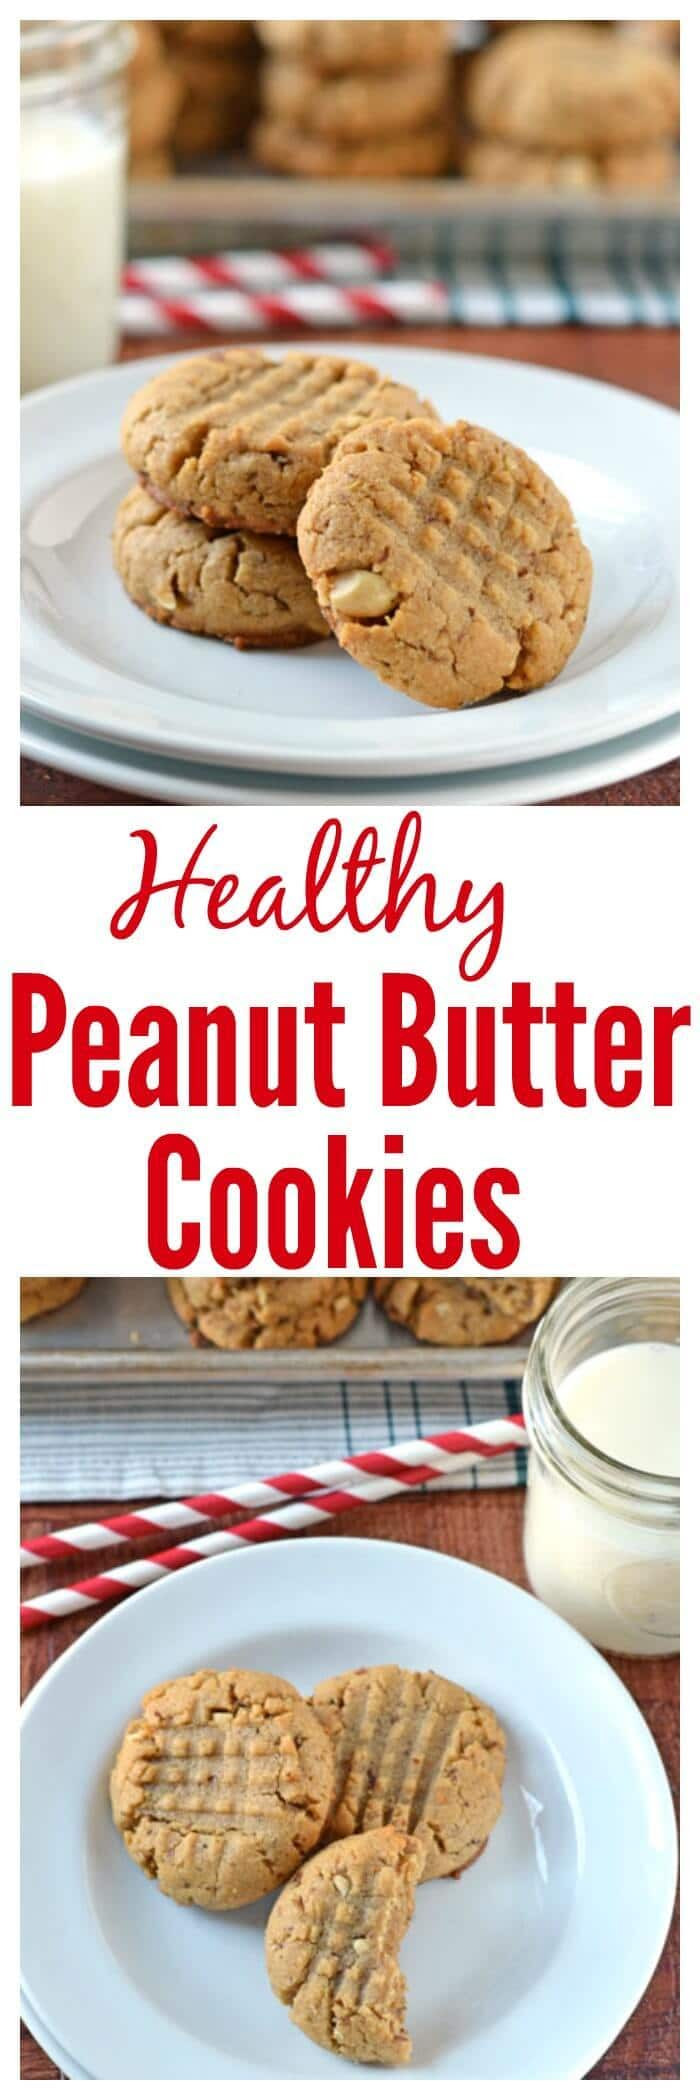 Healthy Peanut Butter Cookies No Sugar  Healthy Peanut Butter Cookies